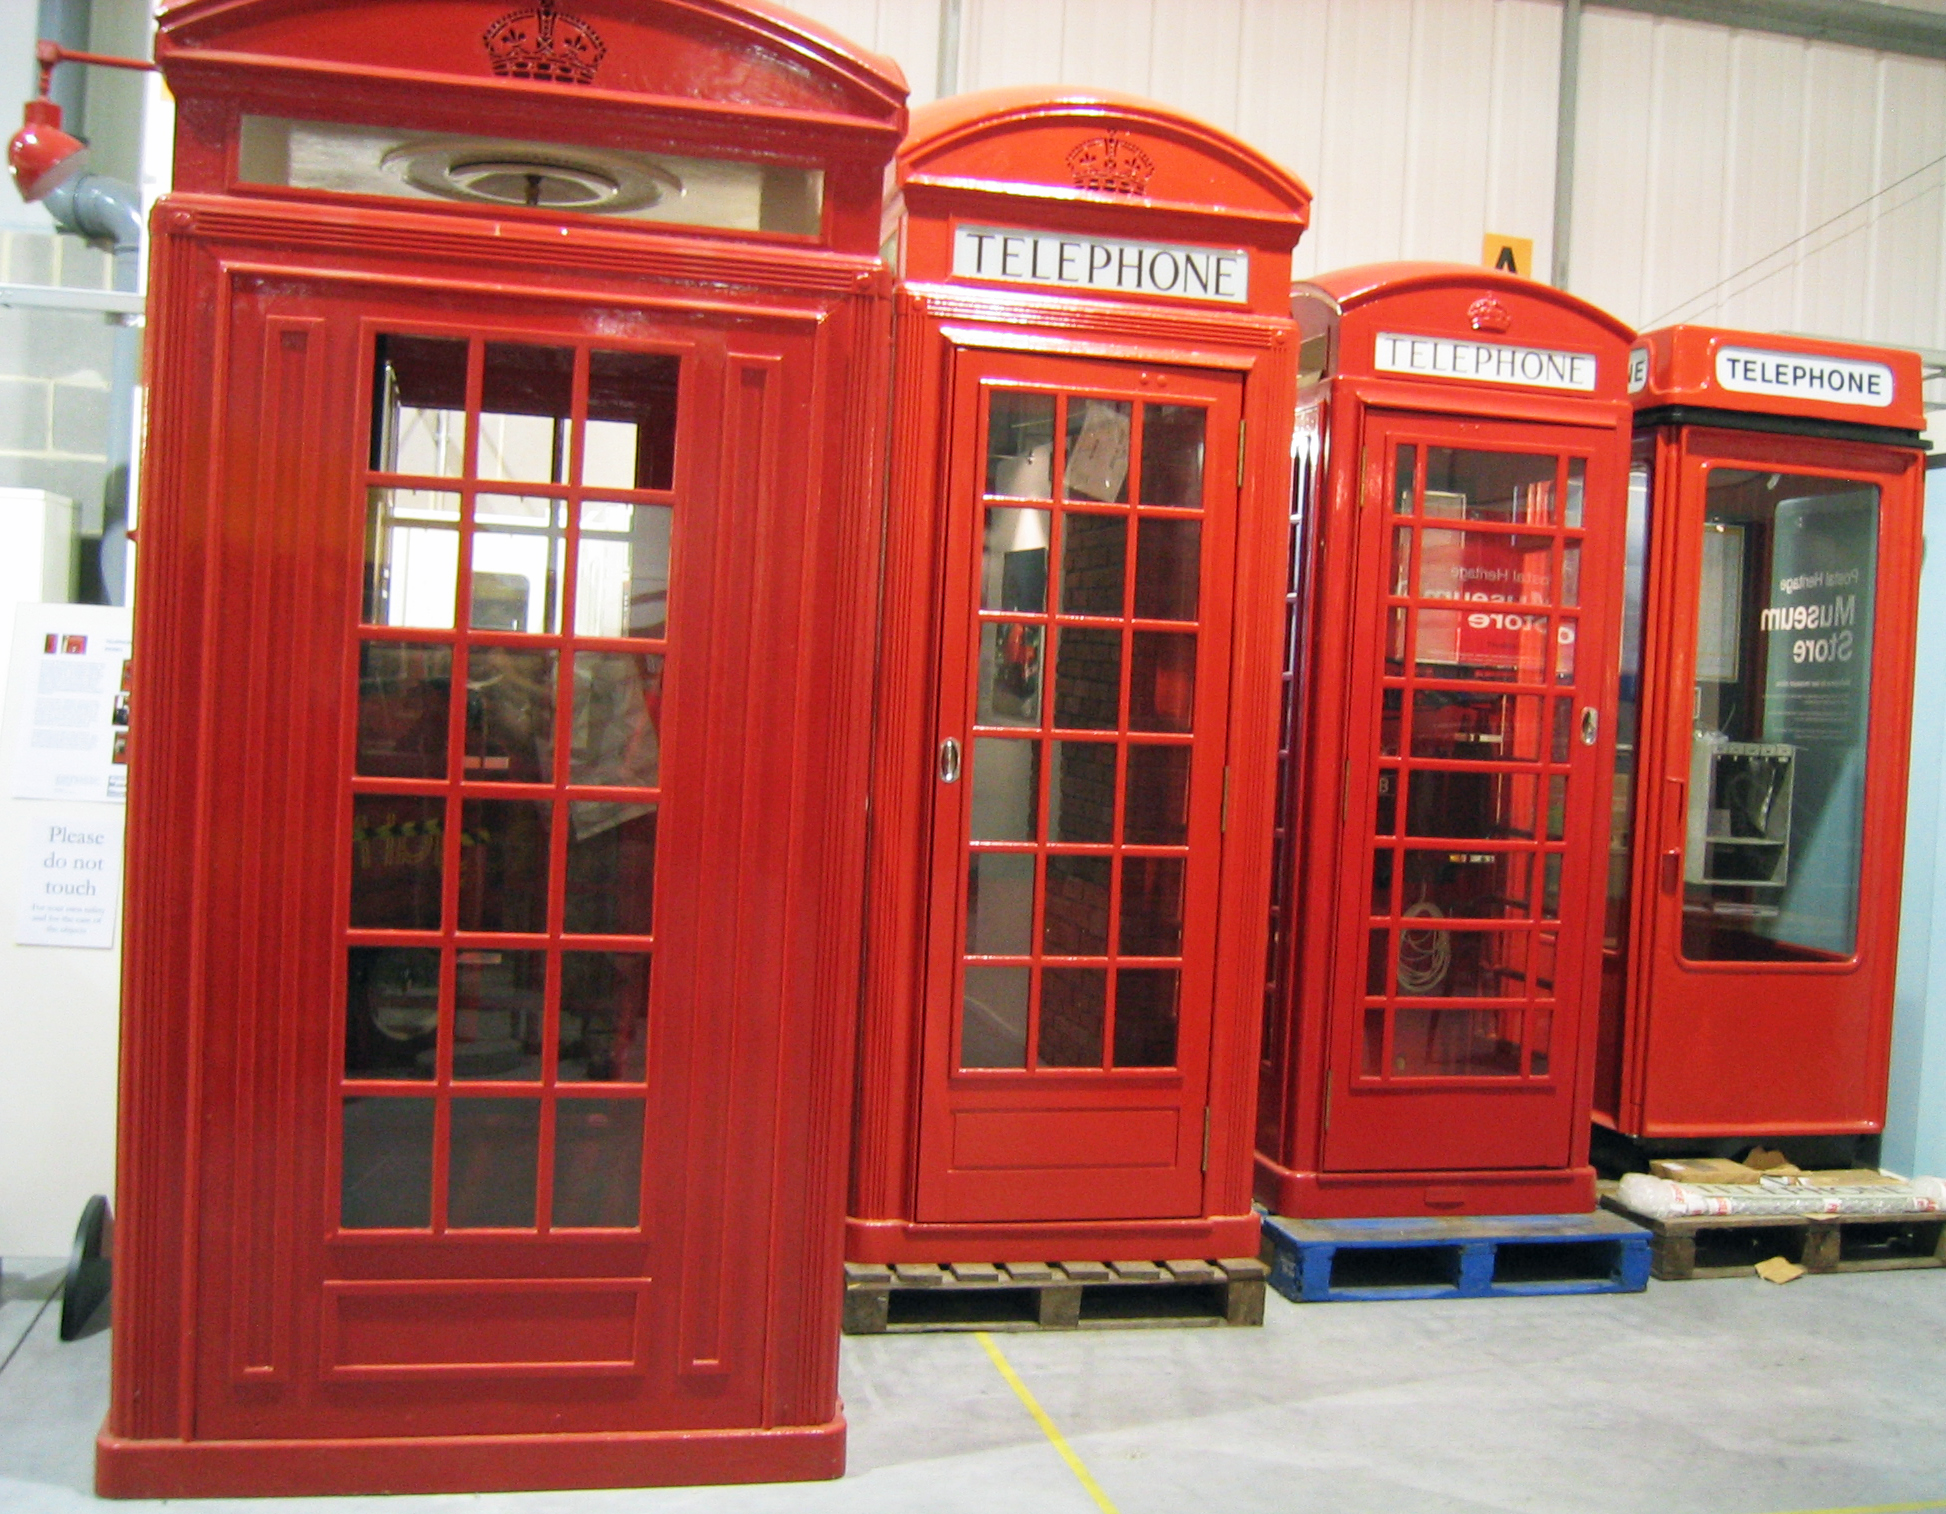 Probably the only time you will see a photo of the four classic K series of red-painted kiosks directly compared side-by-side. Photographed at the Postal Museum's store, from left to right- K4, K2, K6 and K8